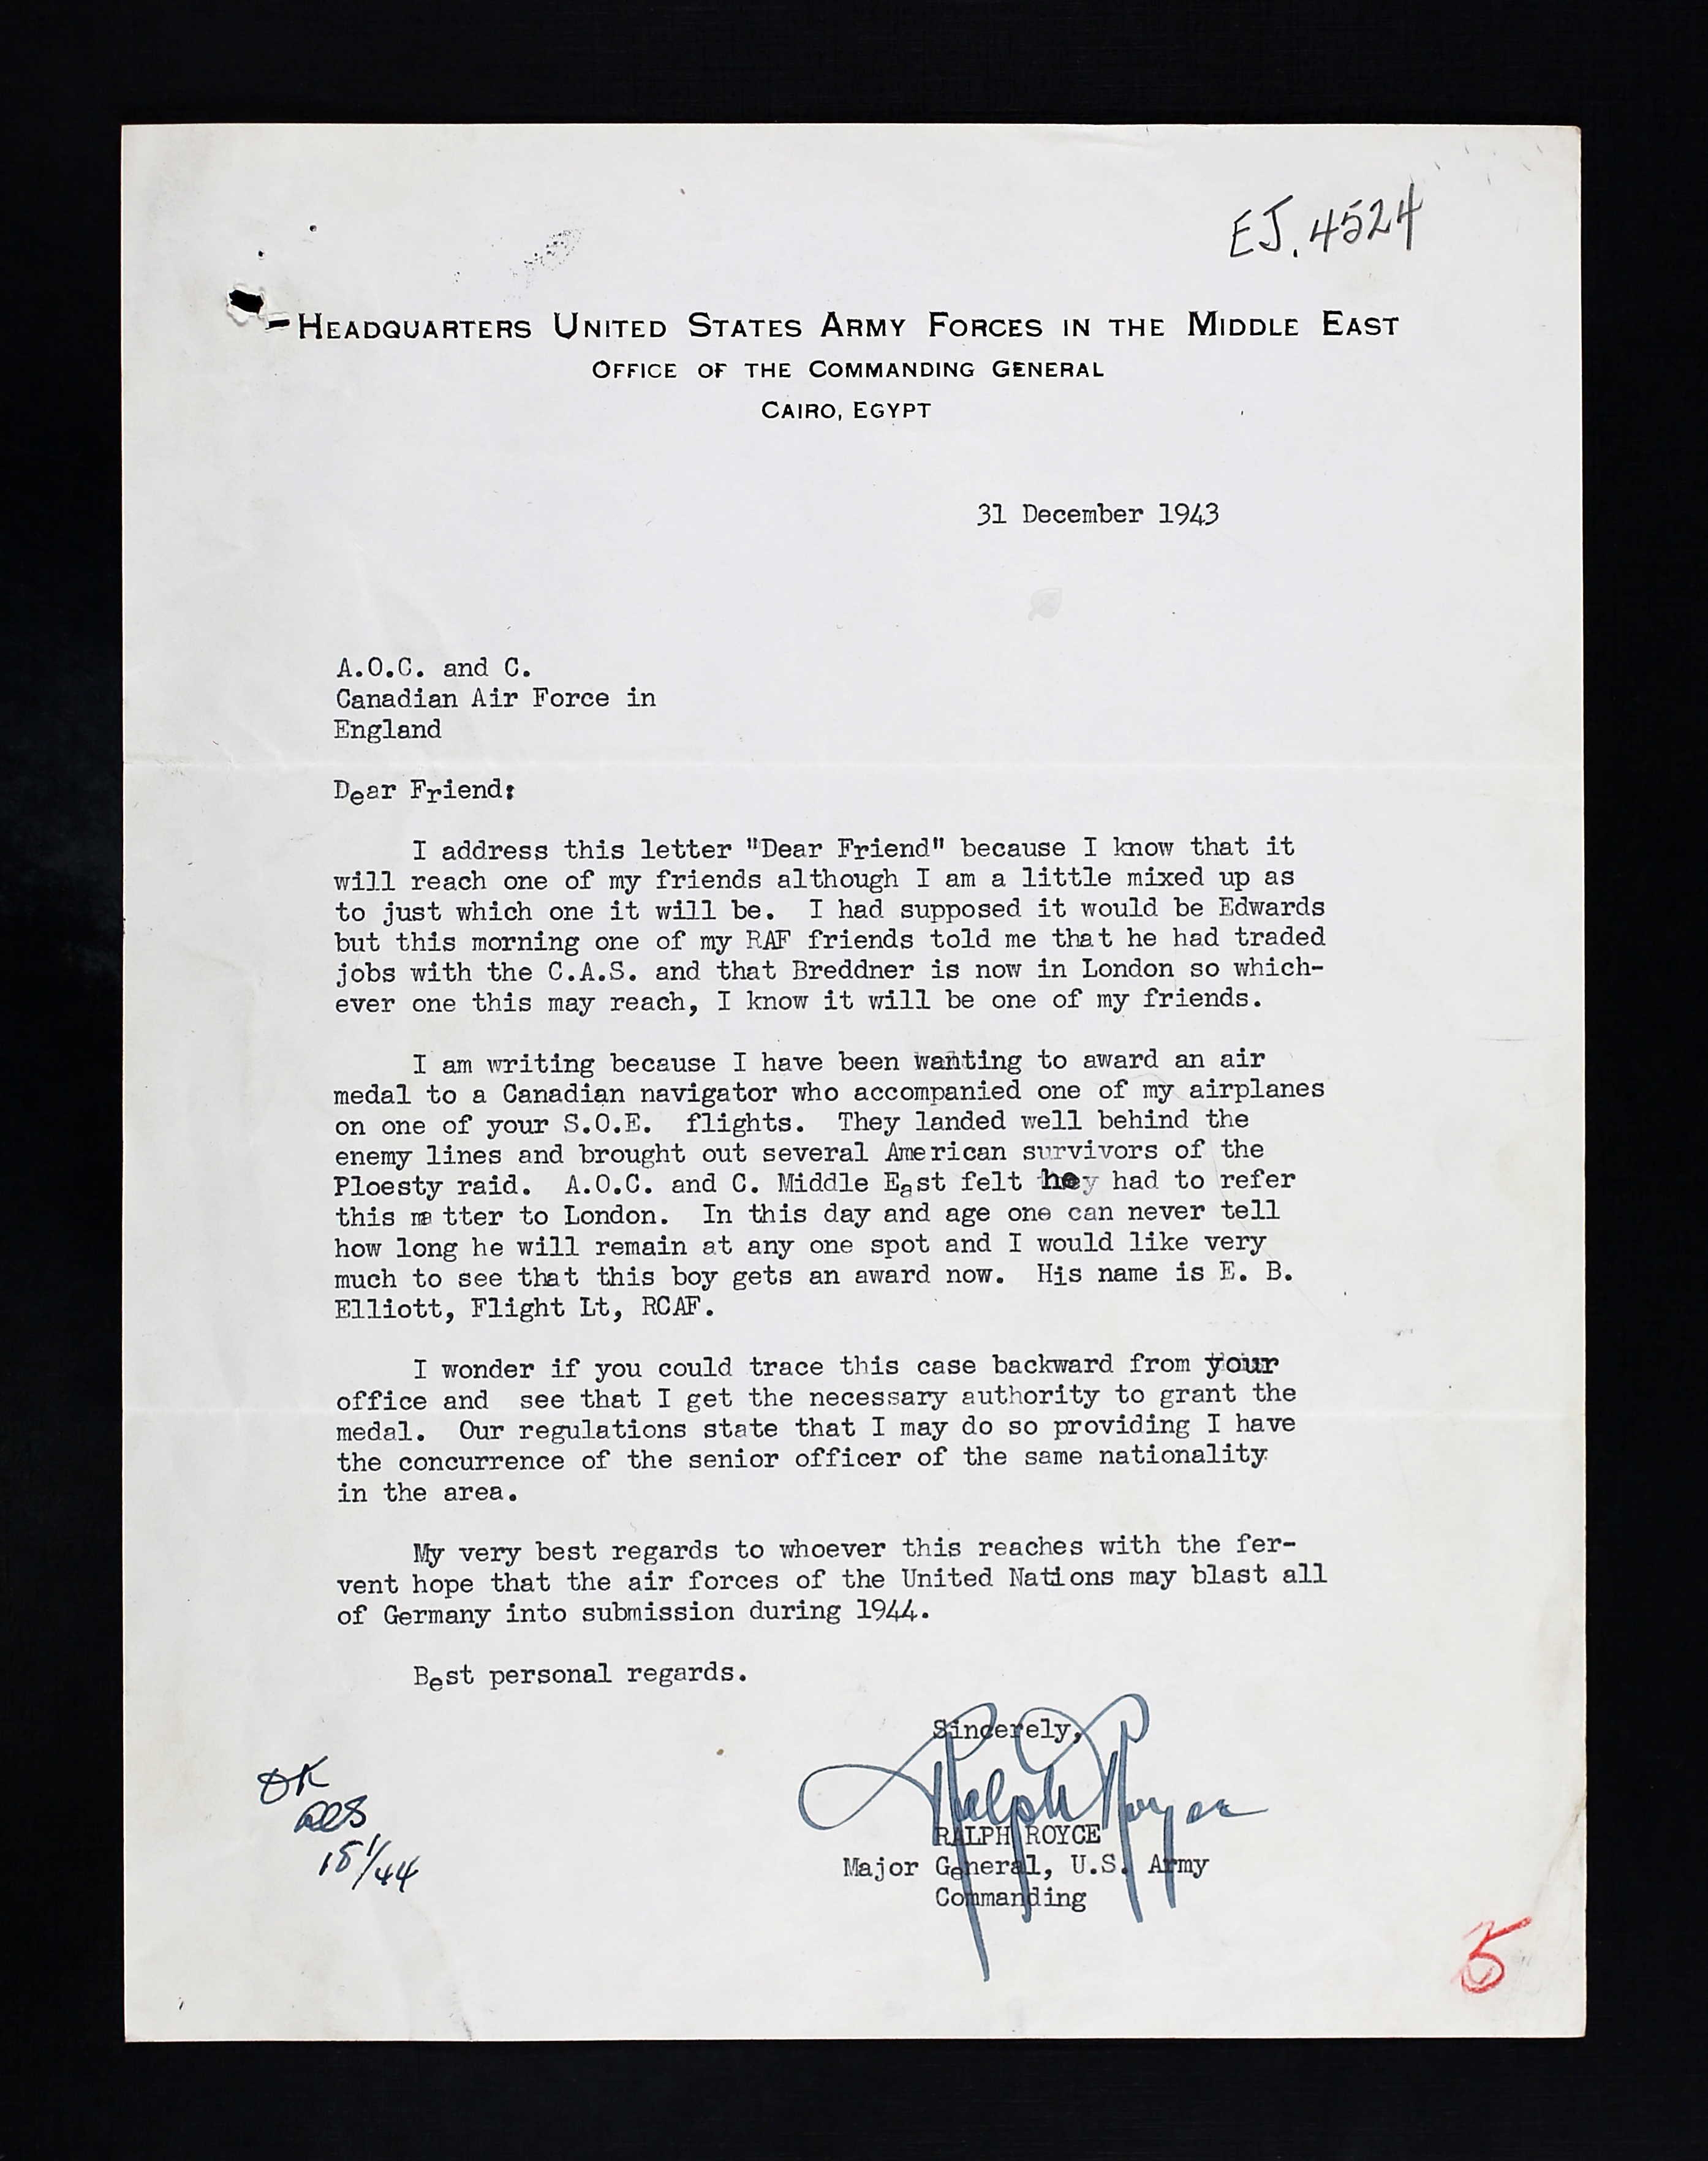 Letter– Letter sent to RCAF after Flt Lt Elliott's death attempting to find him and honour him with an Air Force Medal.